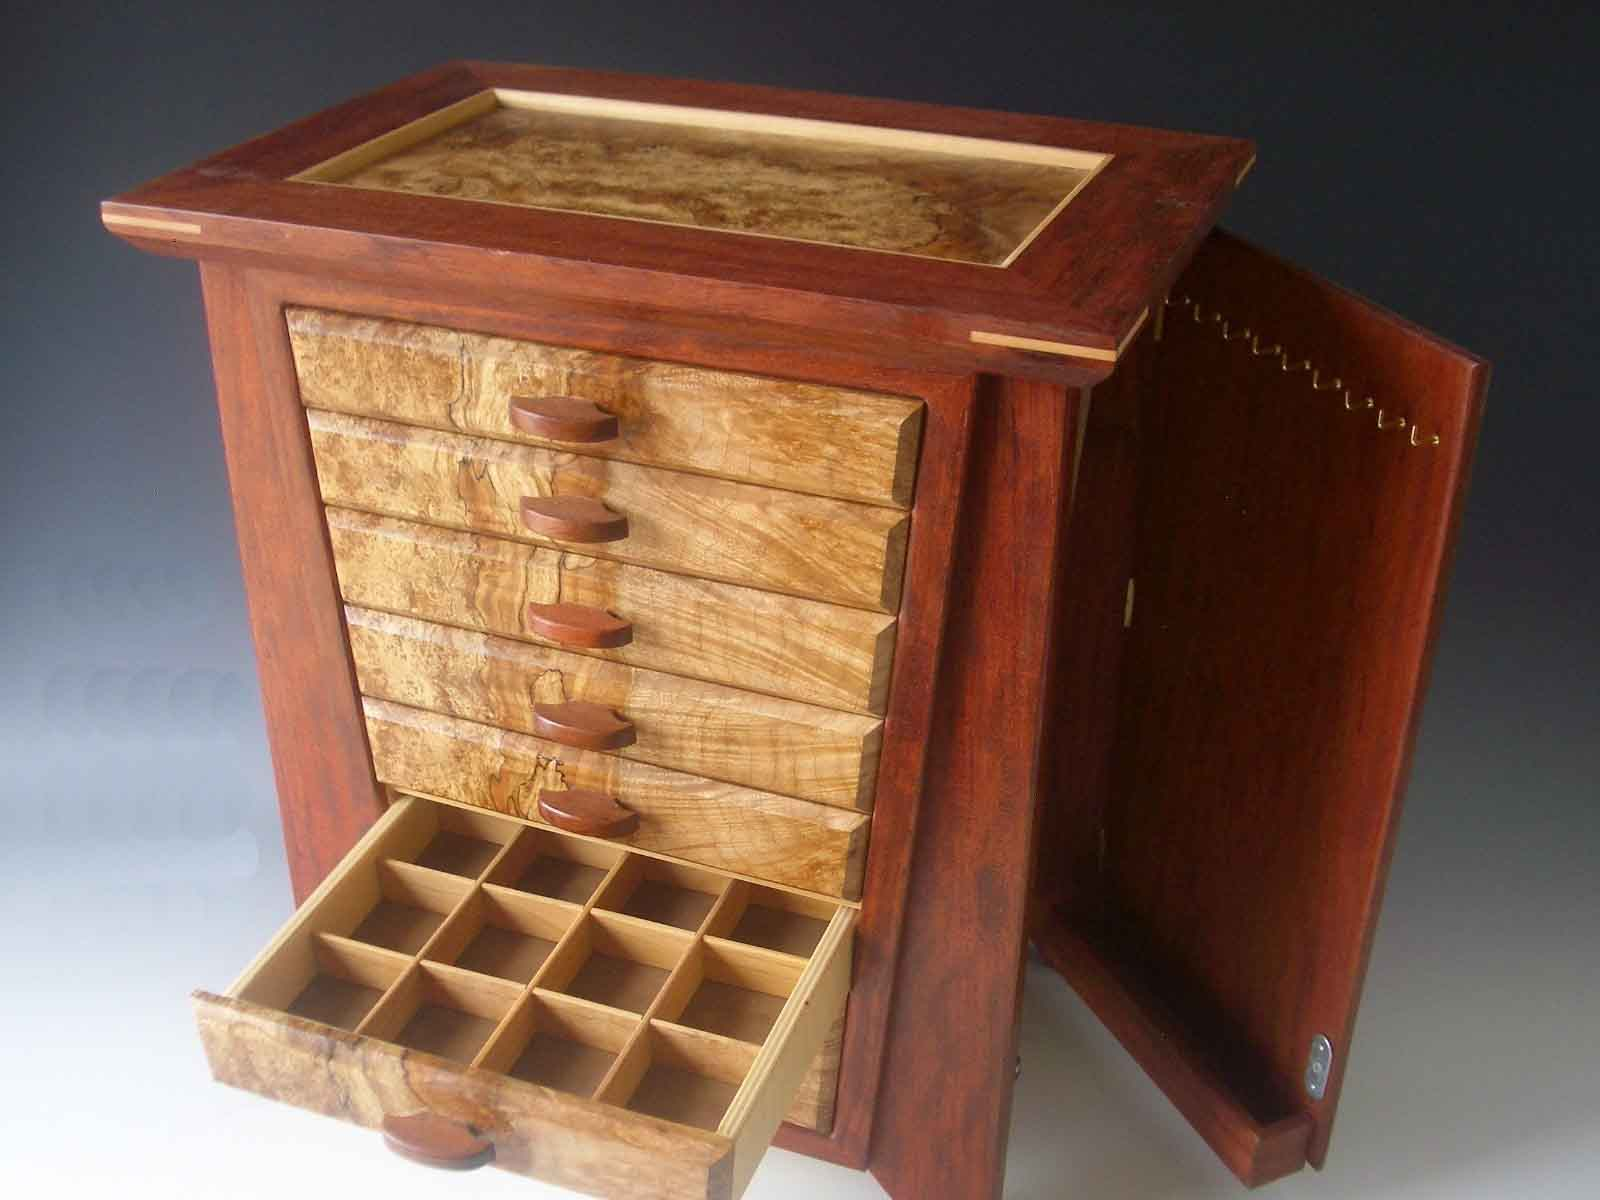 Handmade exotic wood jewelry box made of bubinga wood and burl; with seven drawers and a door that has nine hooks for necklaces